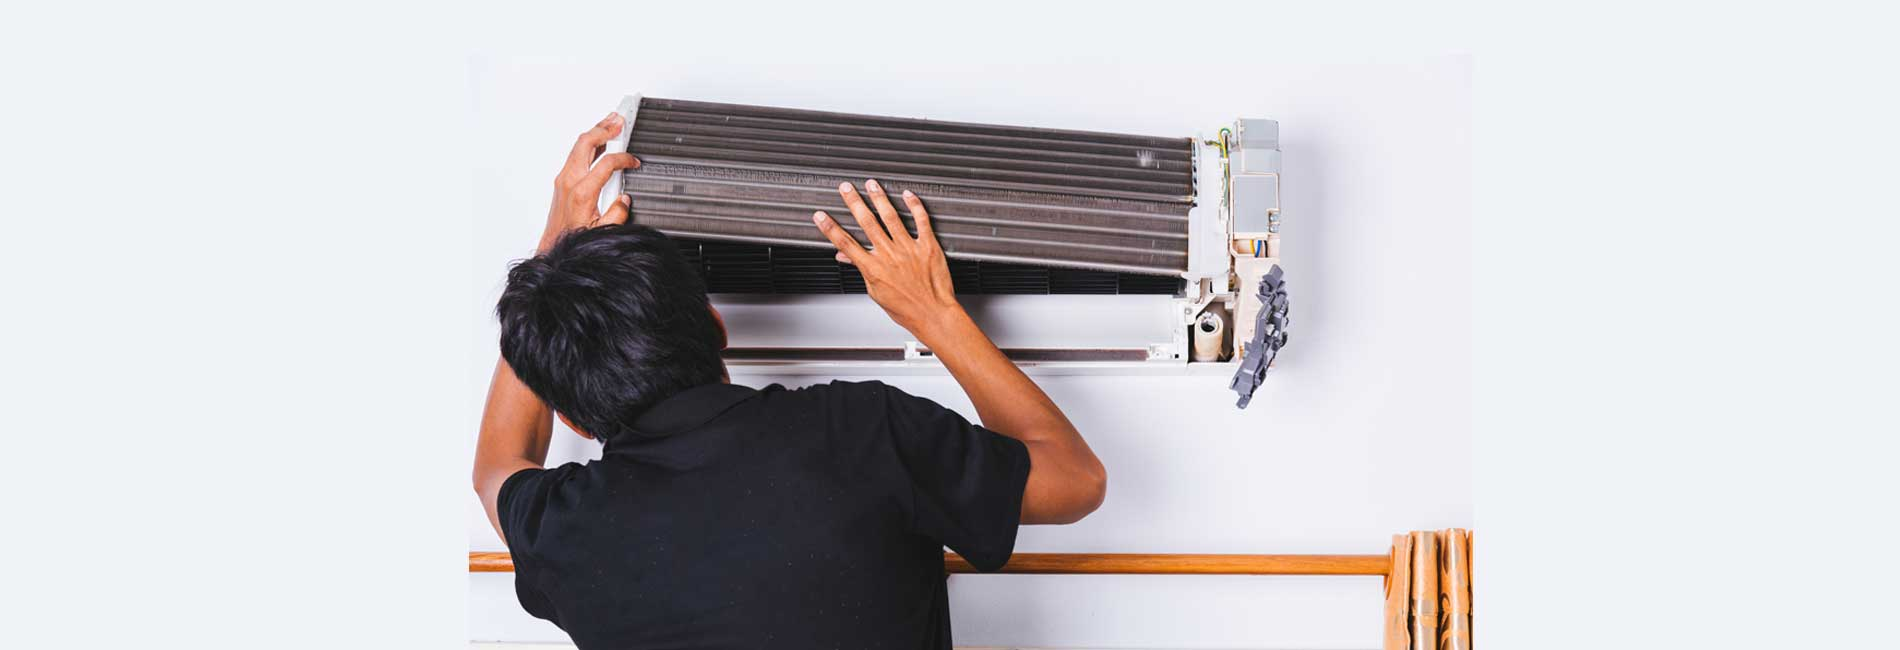 Panasonic AC Uninstallation and Installation in Mylapore